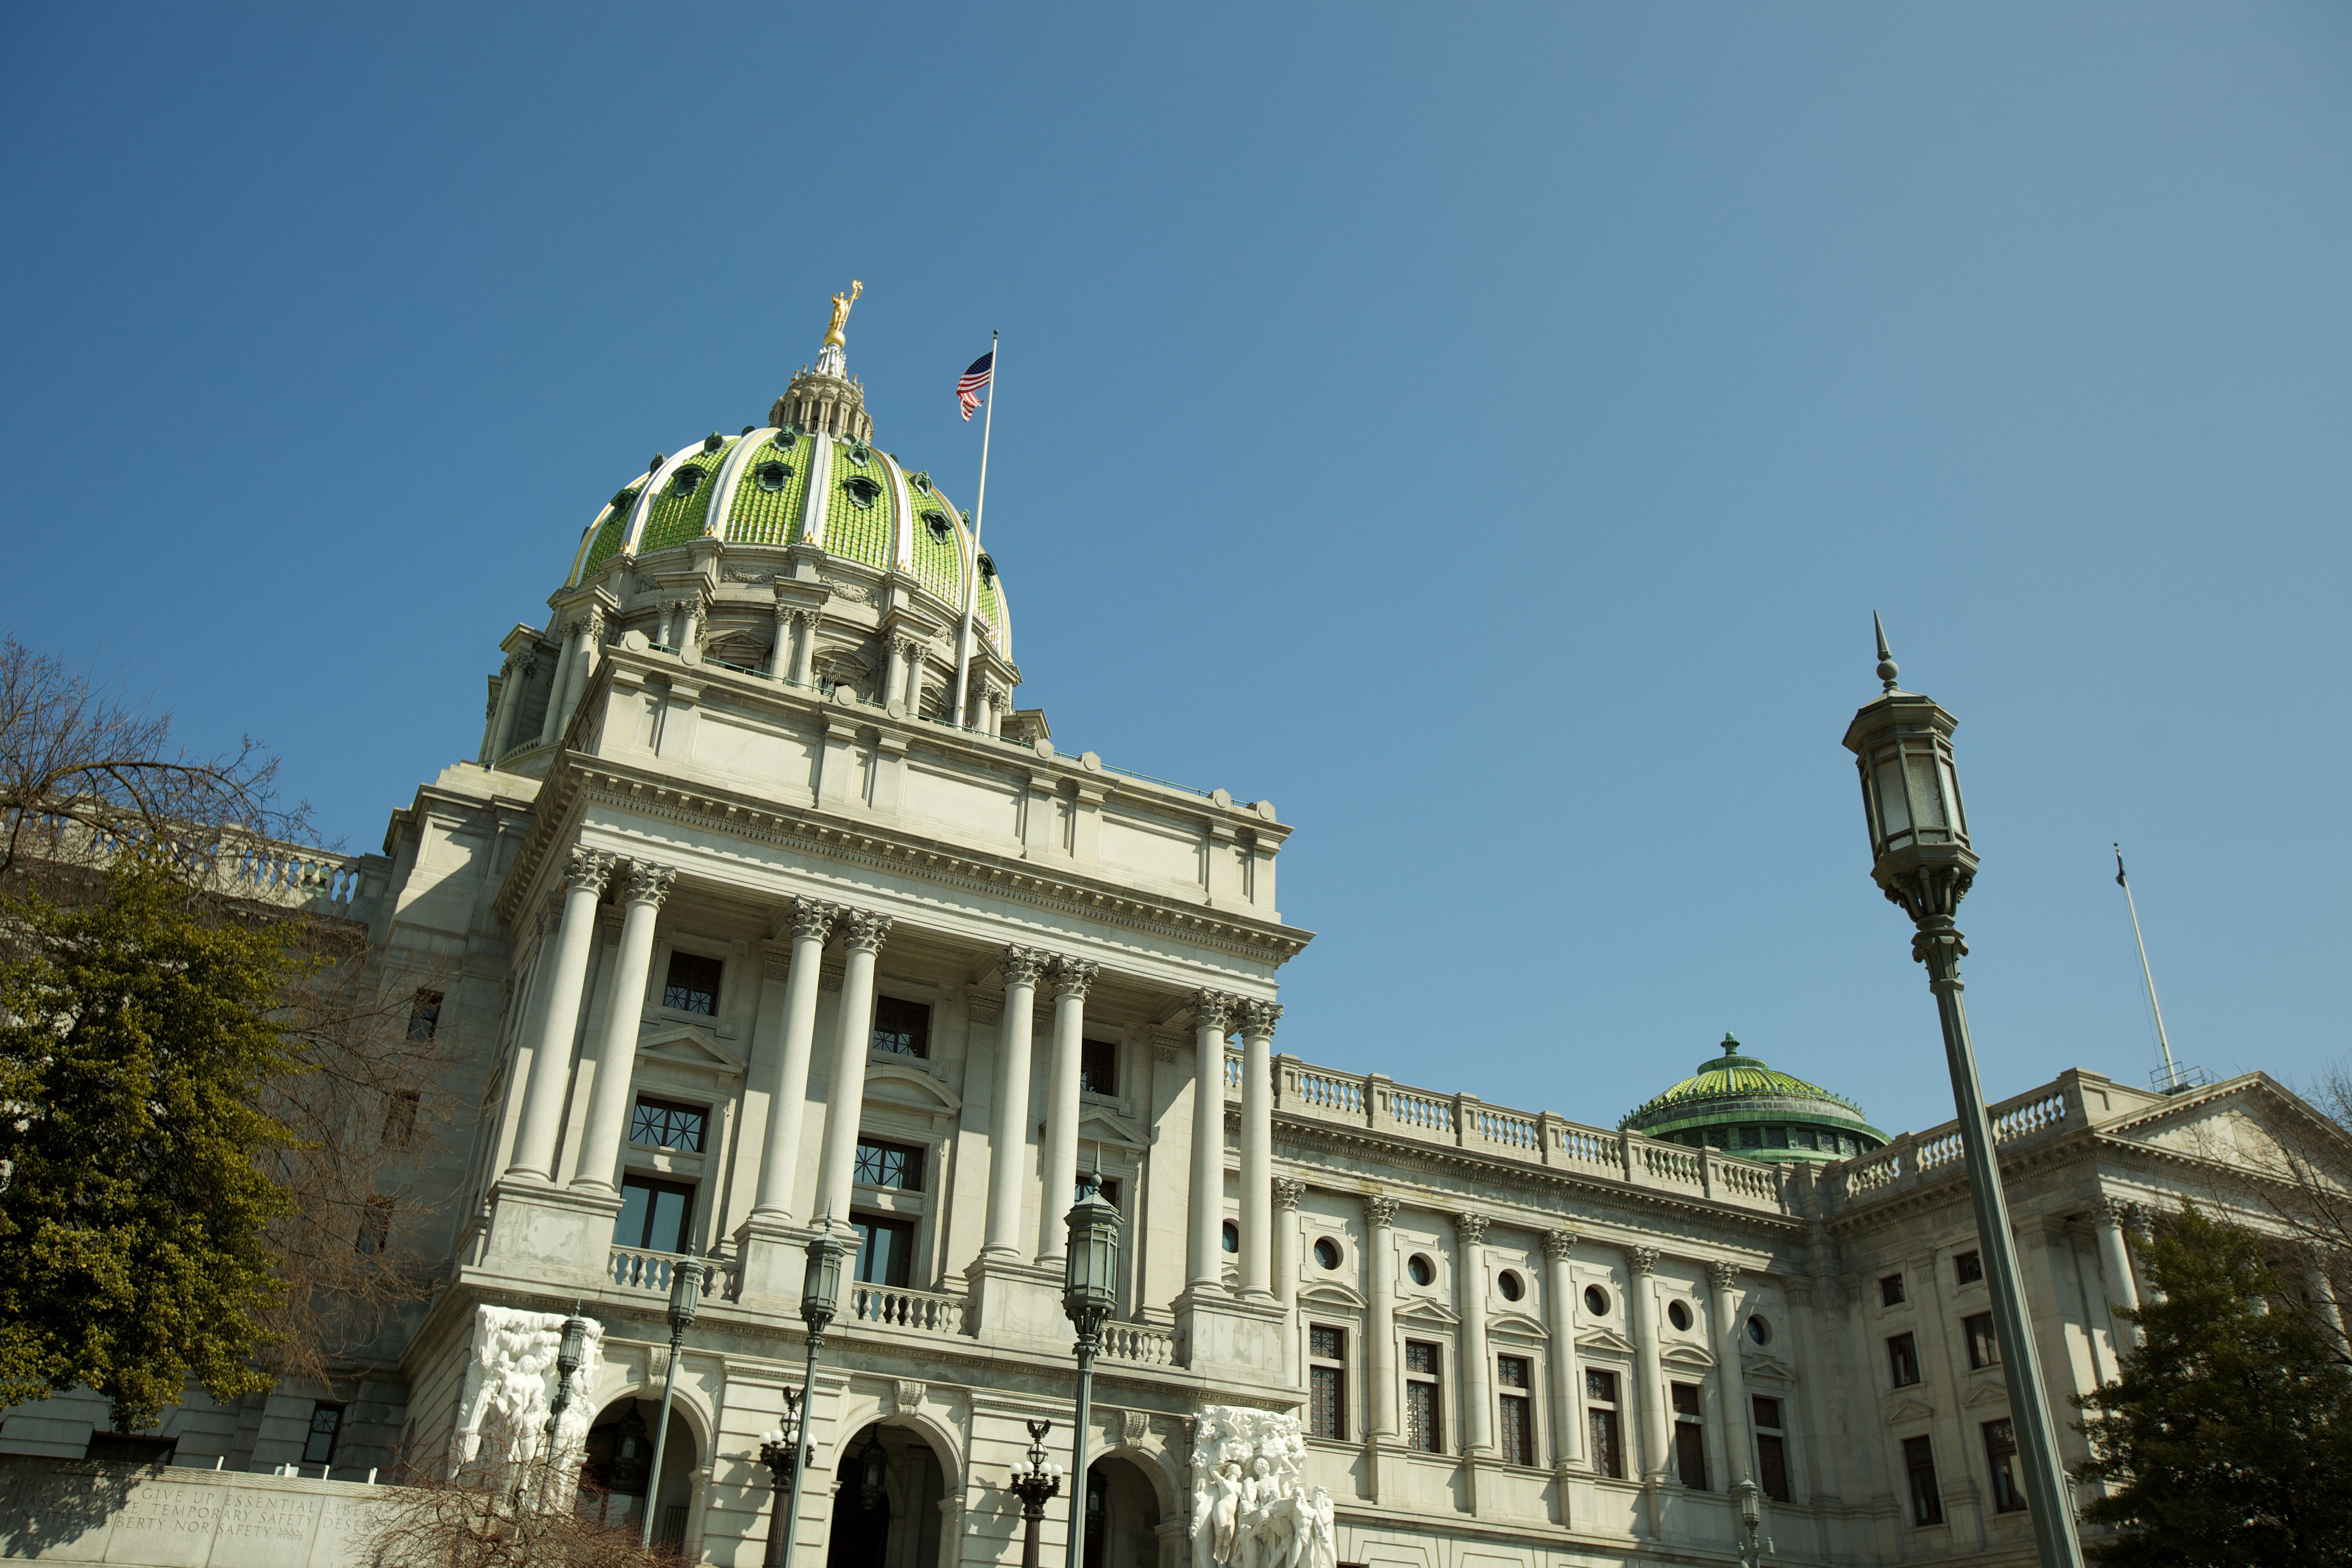 Daylight vertical view of Pennsylvania State Capitol in Harrisburg, PA